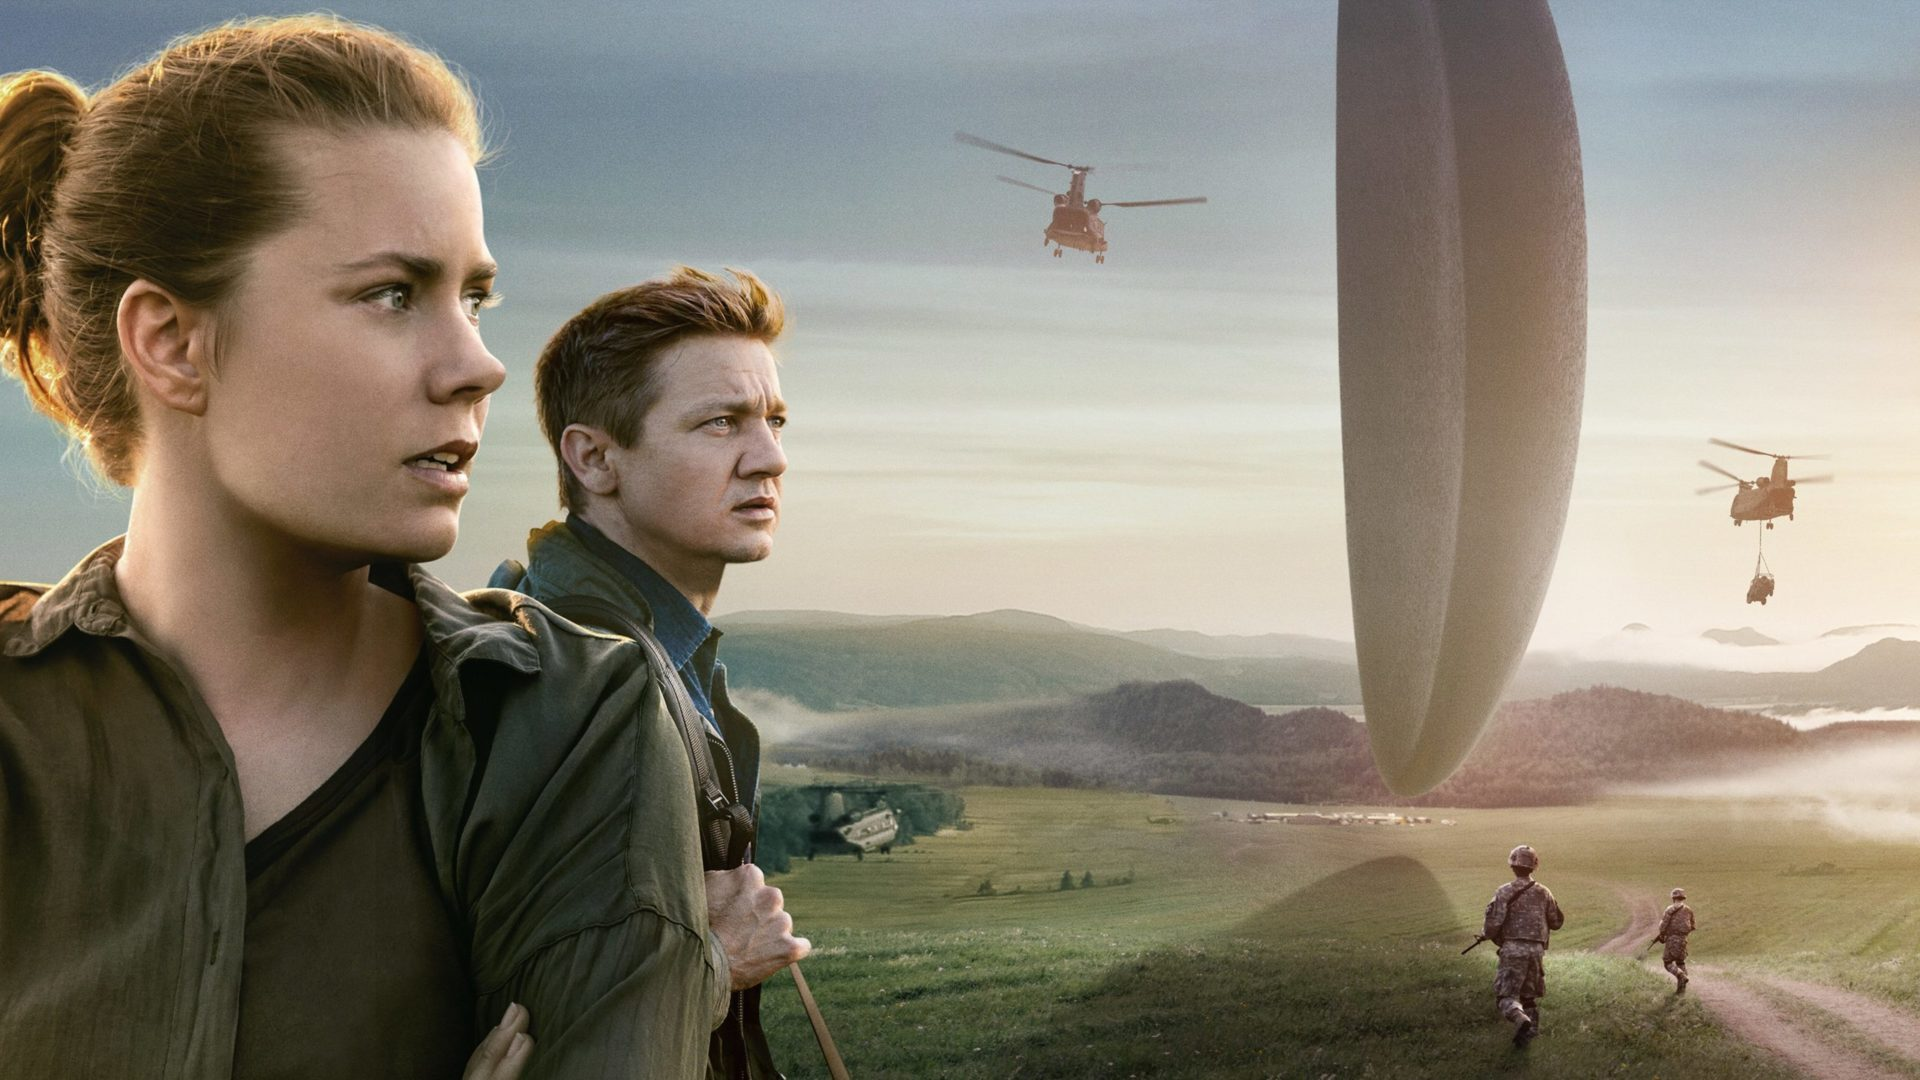 Arrival | Amy Adams | Denis Villeneuve | Beyond The Box Set Podcast